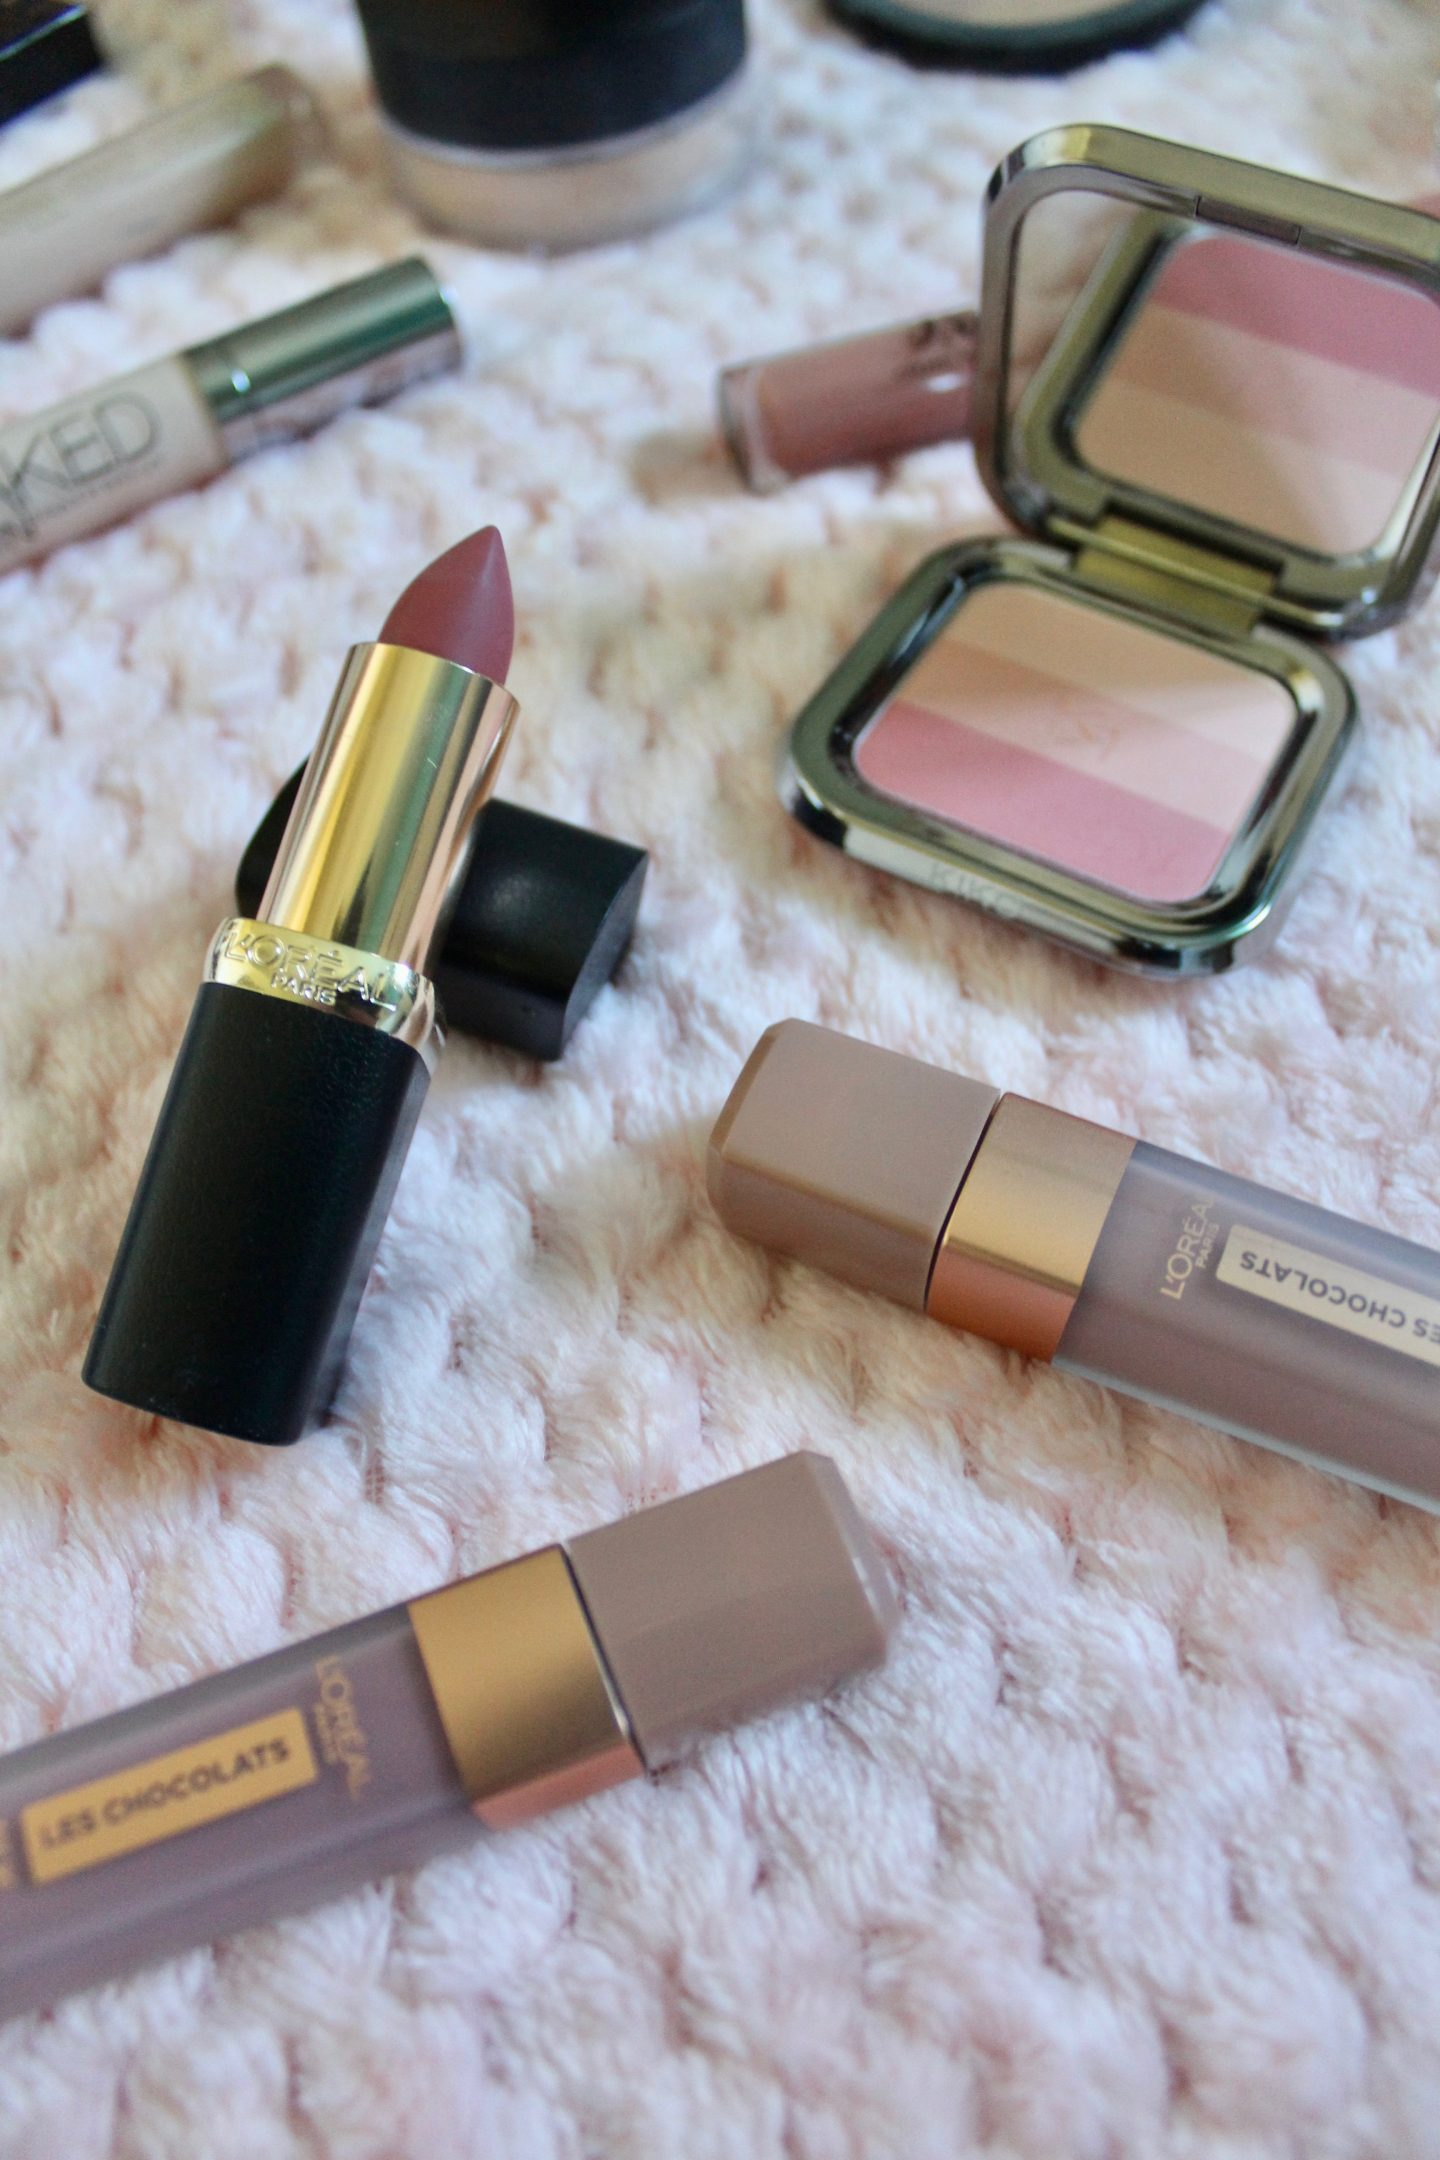 A photo of one of the l'oreal colour riche lipsticks and two of their new chocolate liquid lipsticks